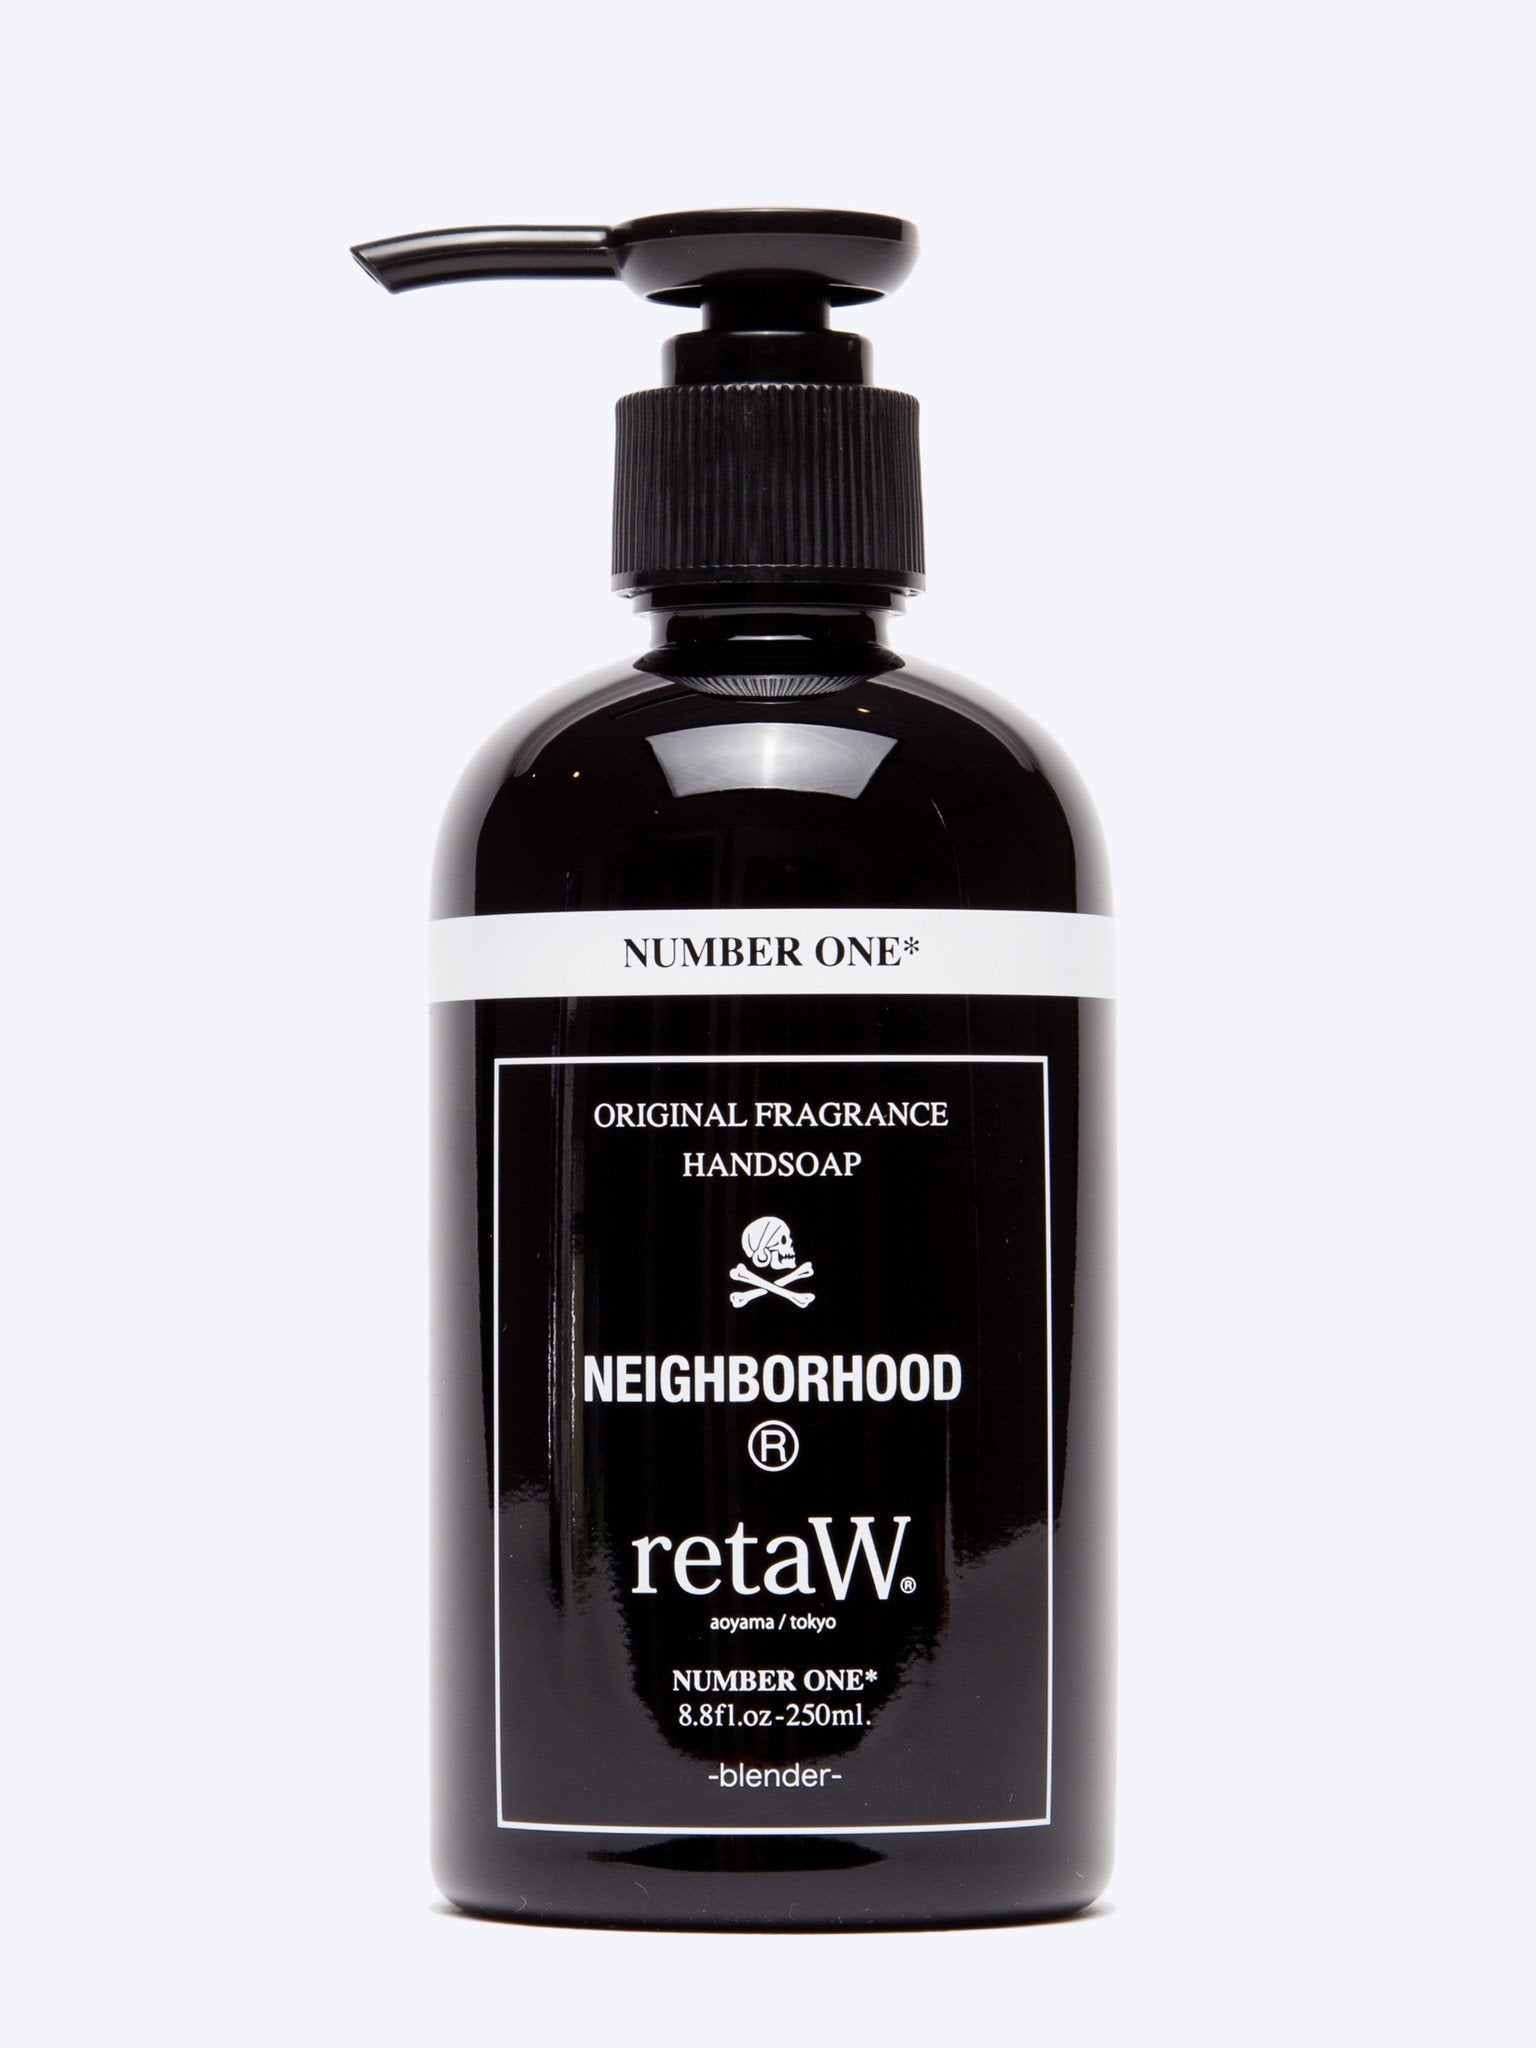 Number One Neighborhood x retaW Hand Soap: Number One 1